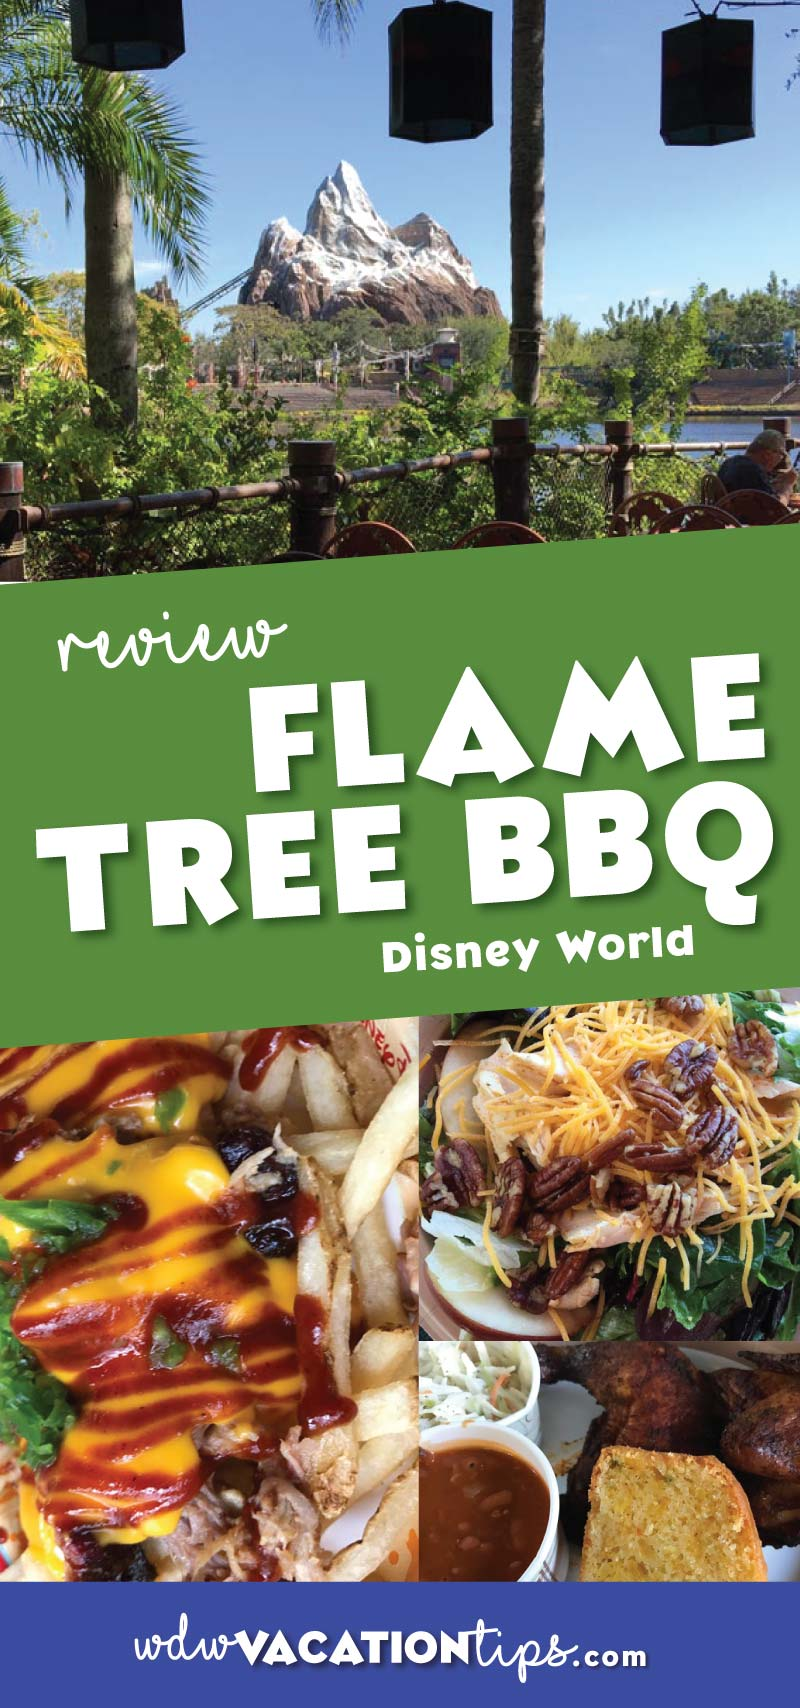 The Flame Tree BBQ is a quick service restaurant located near the Tree of Life at the Animal Kingdom in Walt Disney World. This is THE BEST quick service location option at the Animal Kingdom.